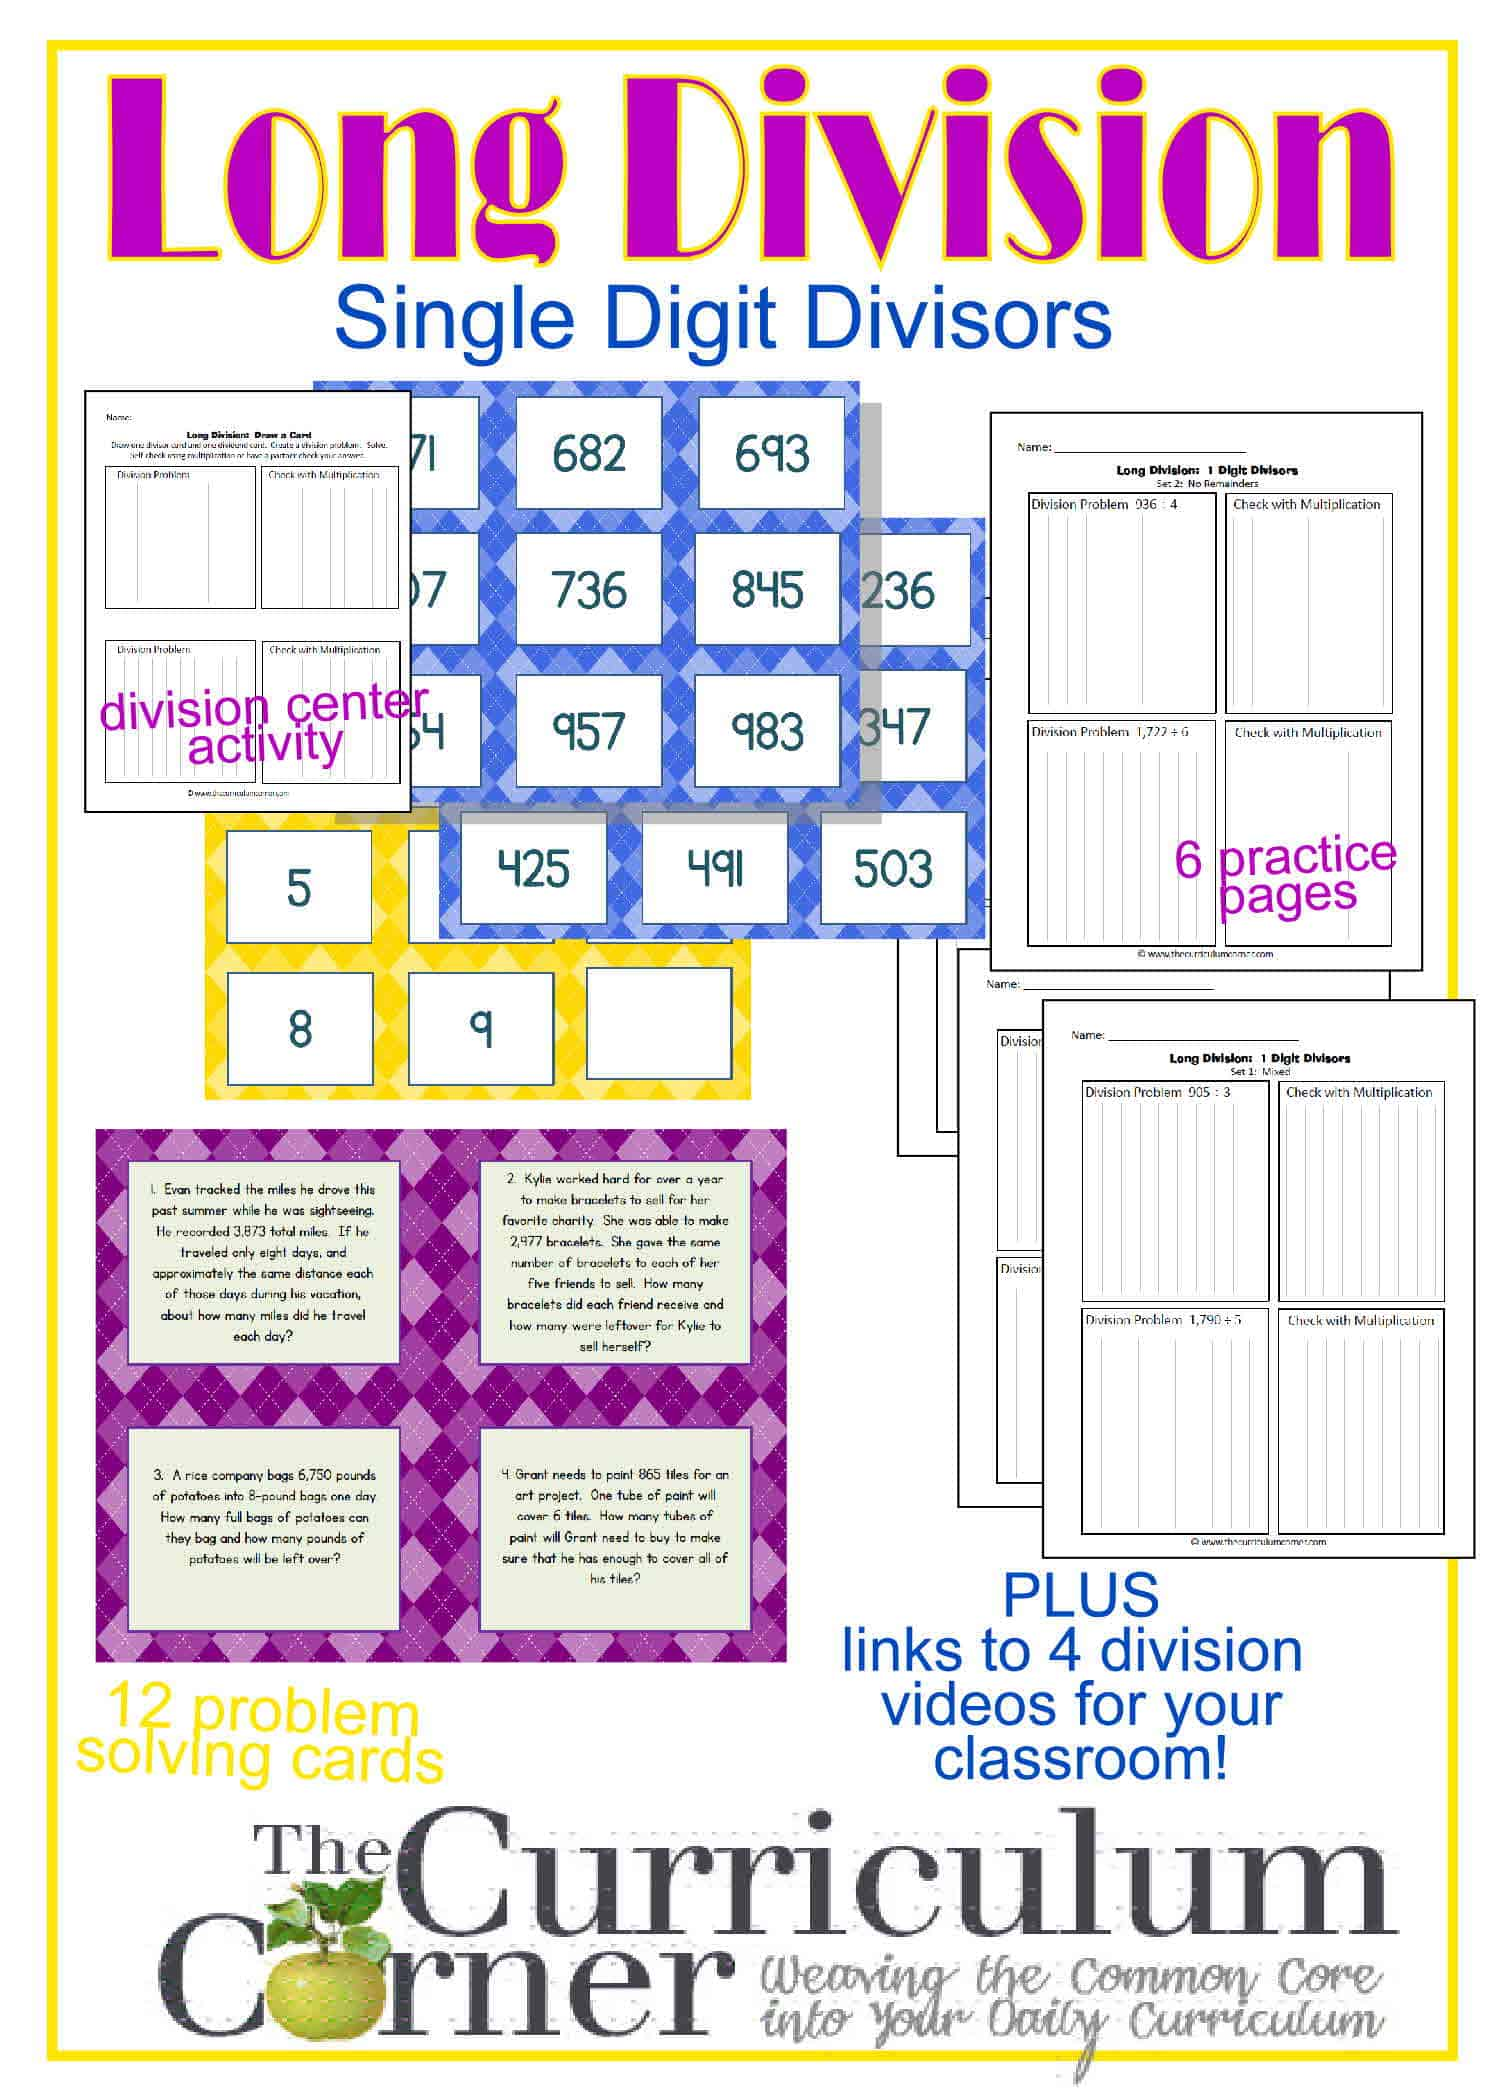 hight resolution of Long Division Resources (1-Digit Divisor) - The Curriculum Corner 4-5-6